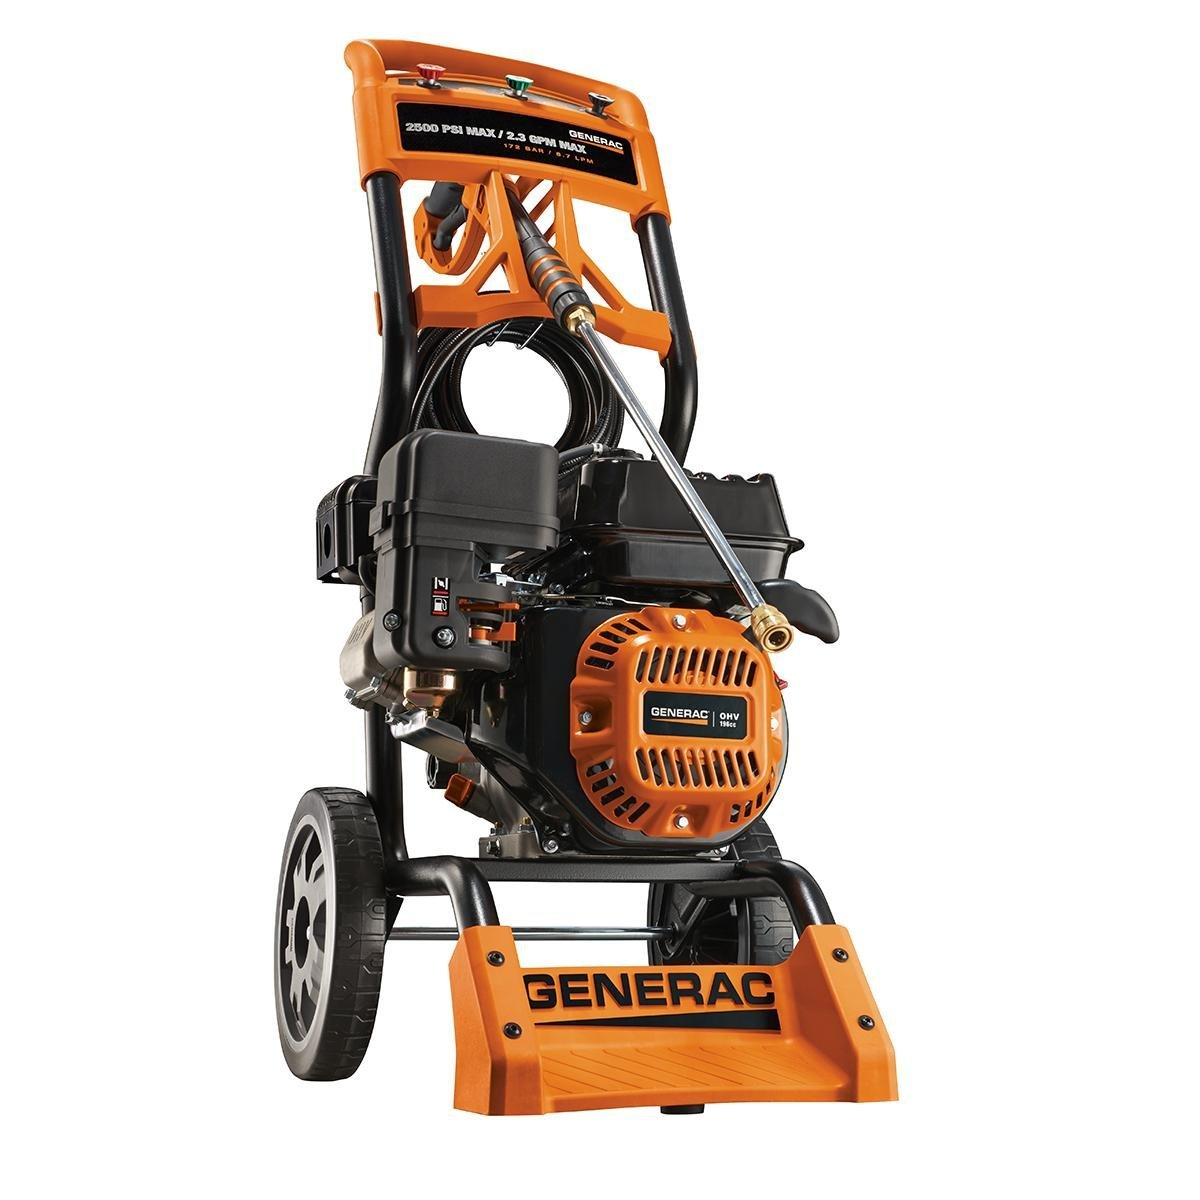 generac-6596-2800-psi-2.5-gpm-196cc-ohv-gas-powered-residential-pressure-washer-discontinued-manufacturer-best-pressure-washer-cars-review